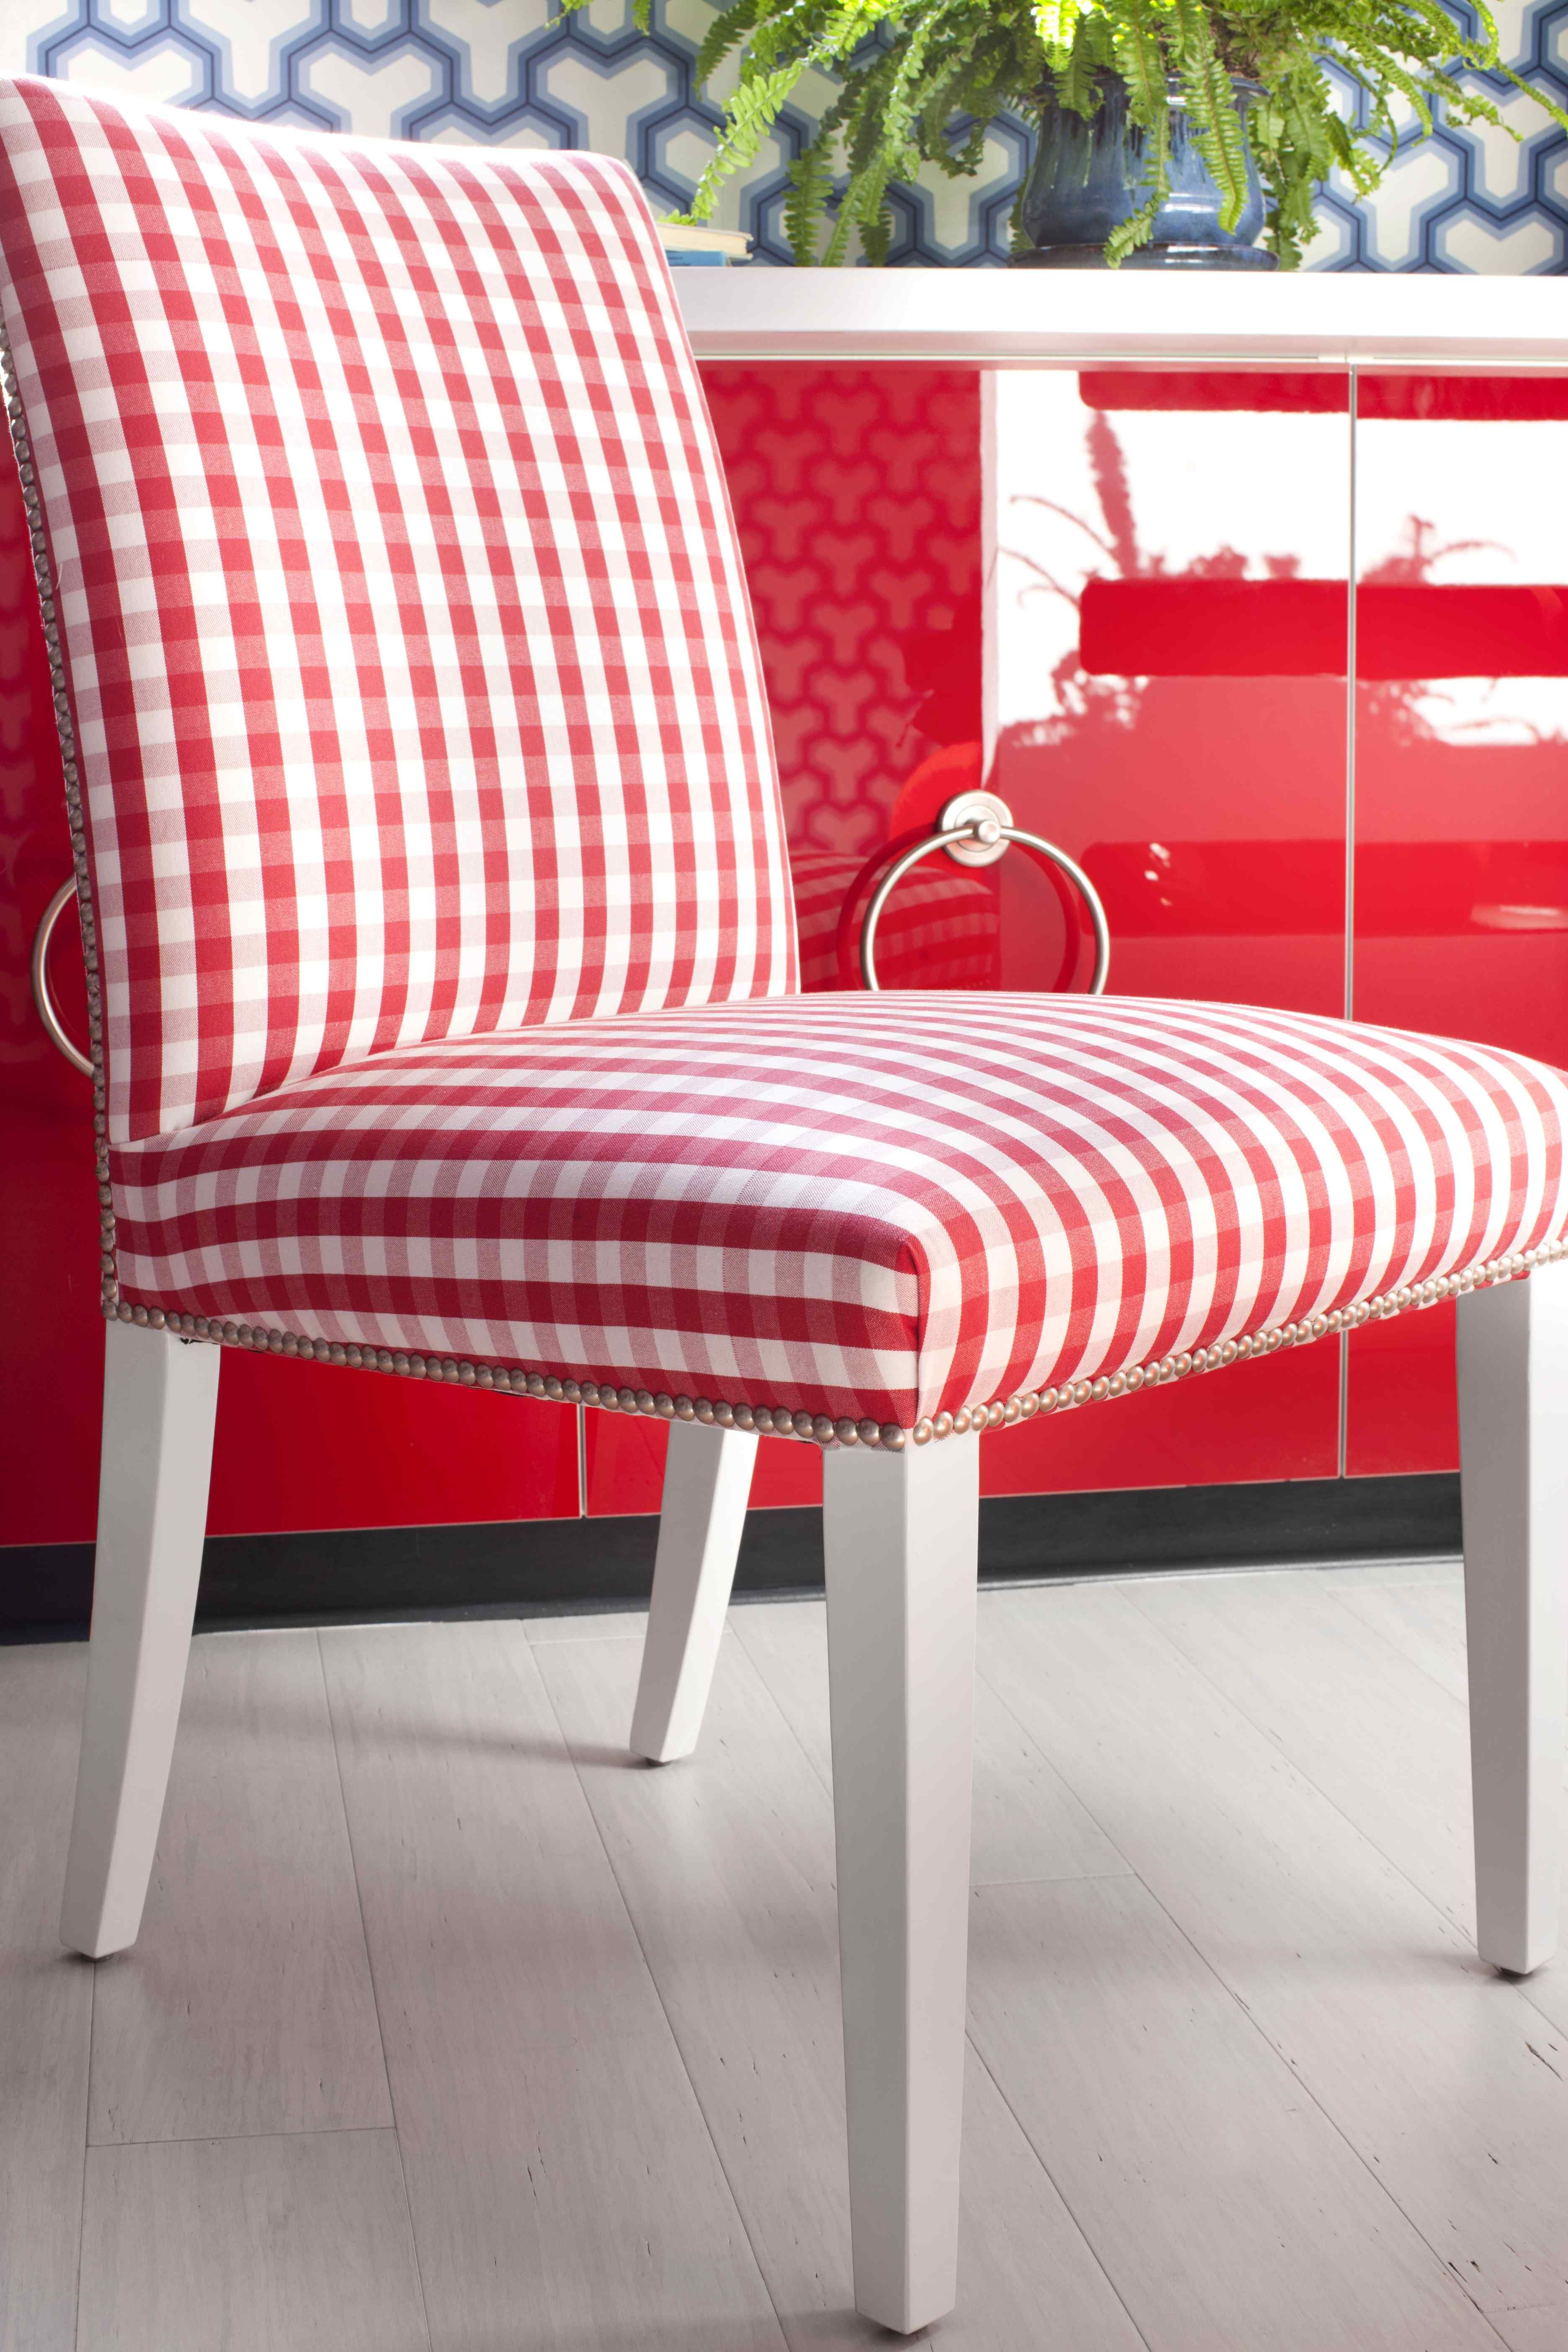 59.99 IKEA Henriksdal chair updated with gingham and